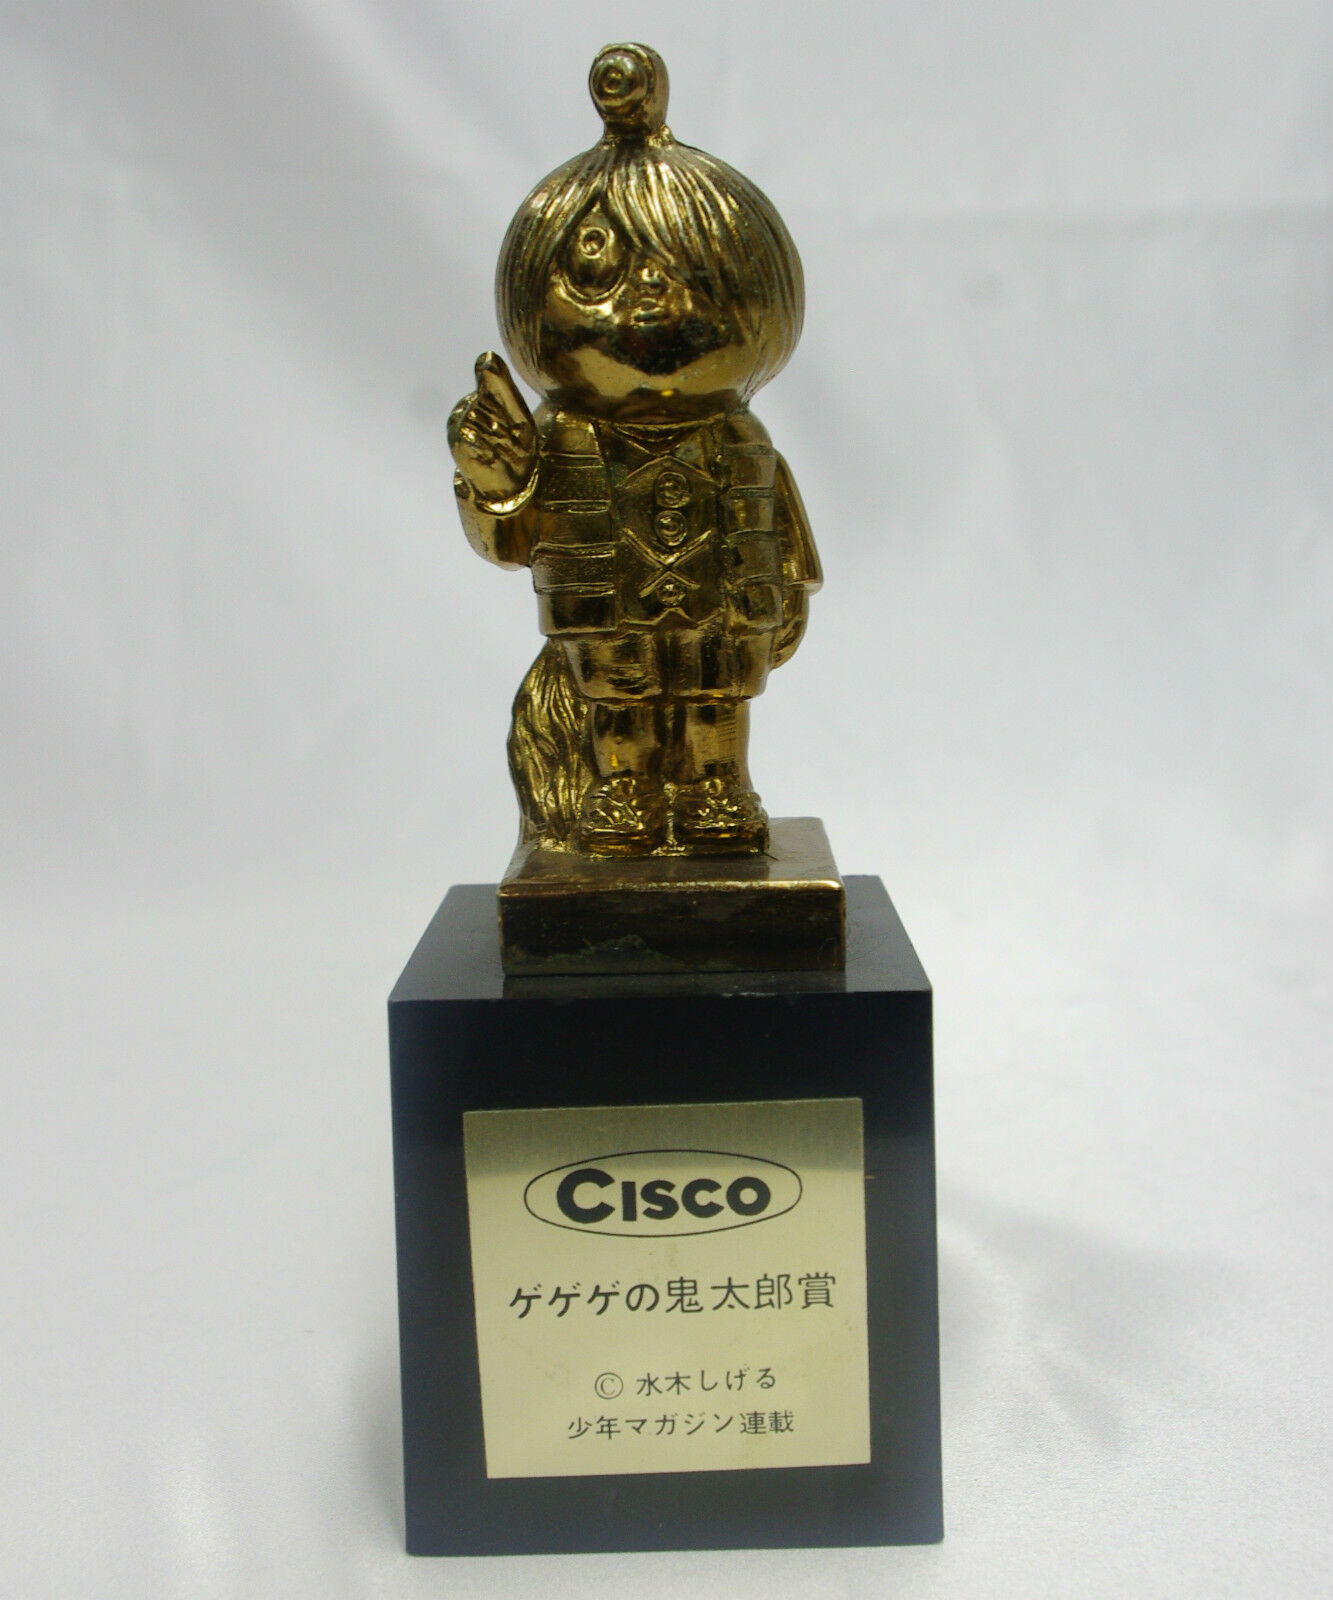 6  Gegege no Kitaro vintage 1960's Cisco lottery prize statue Japanese anime toy